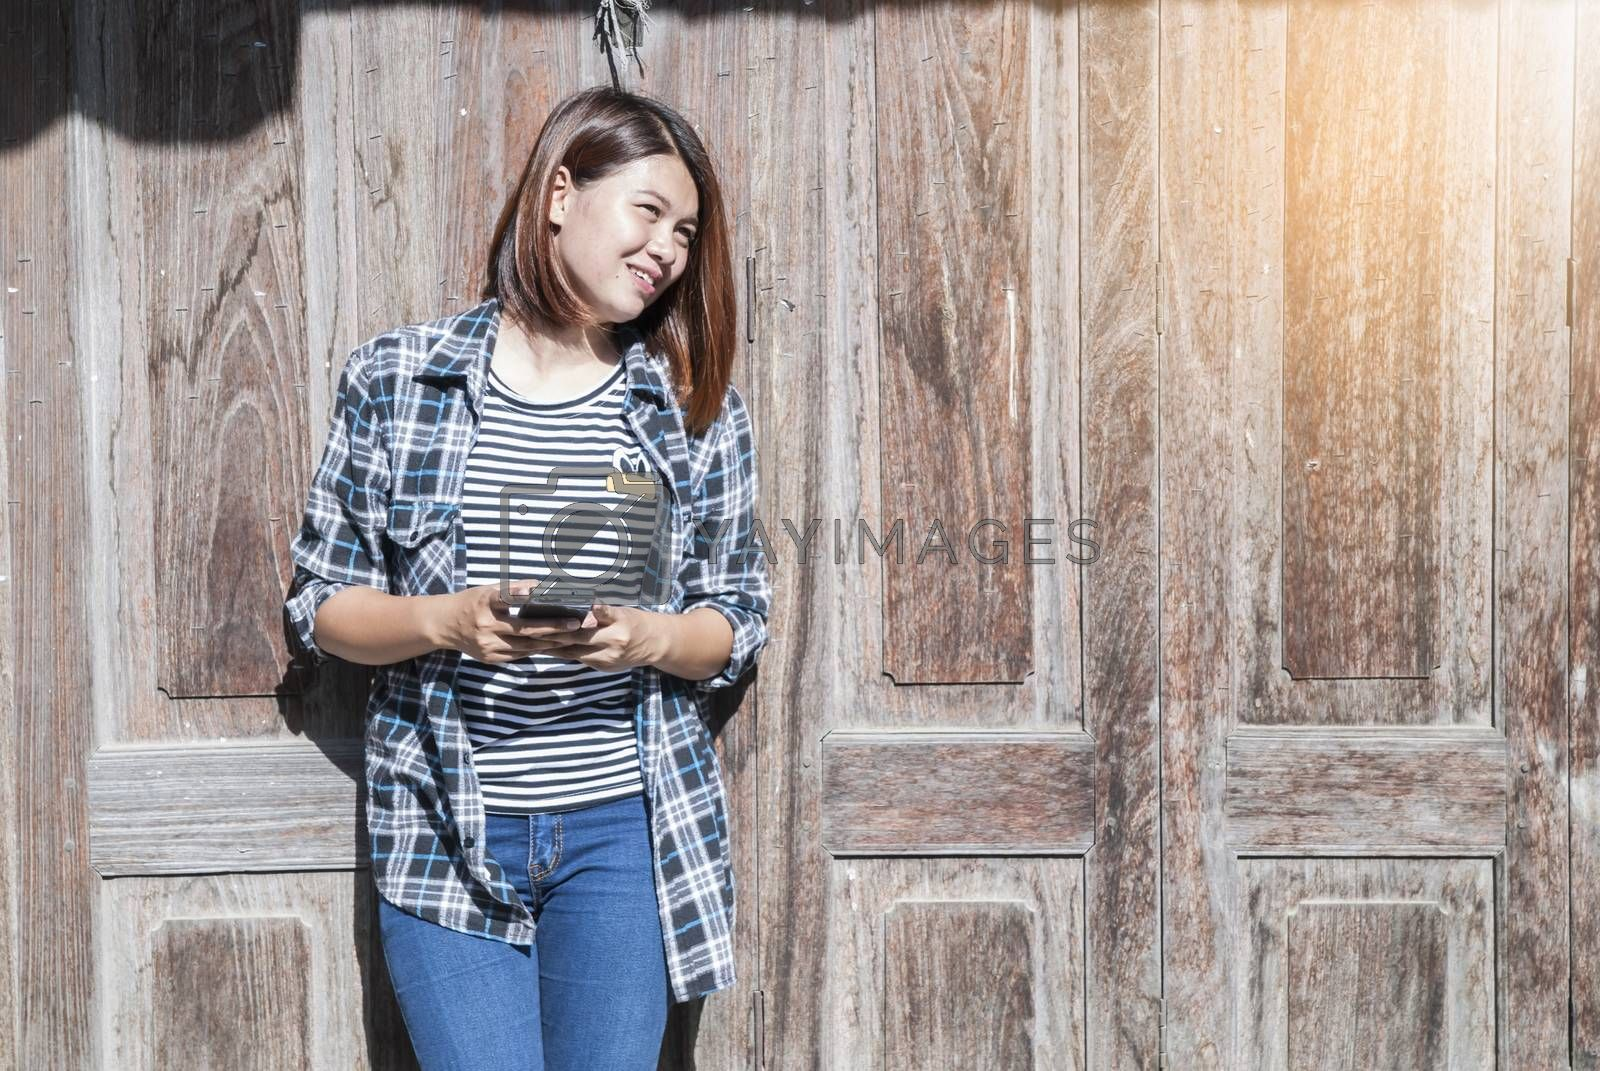 young woman happy with her phone and wooden background